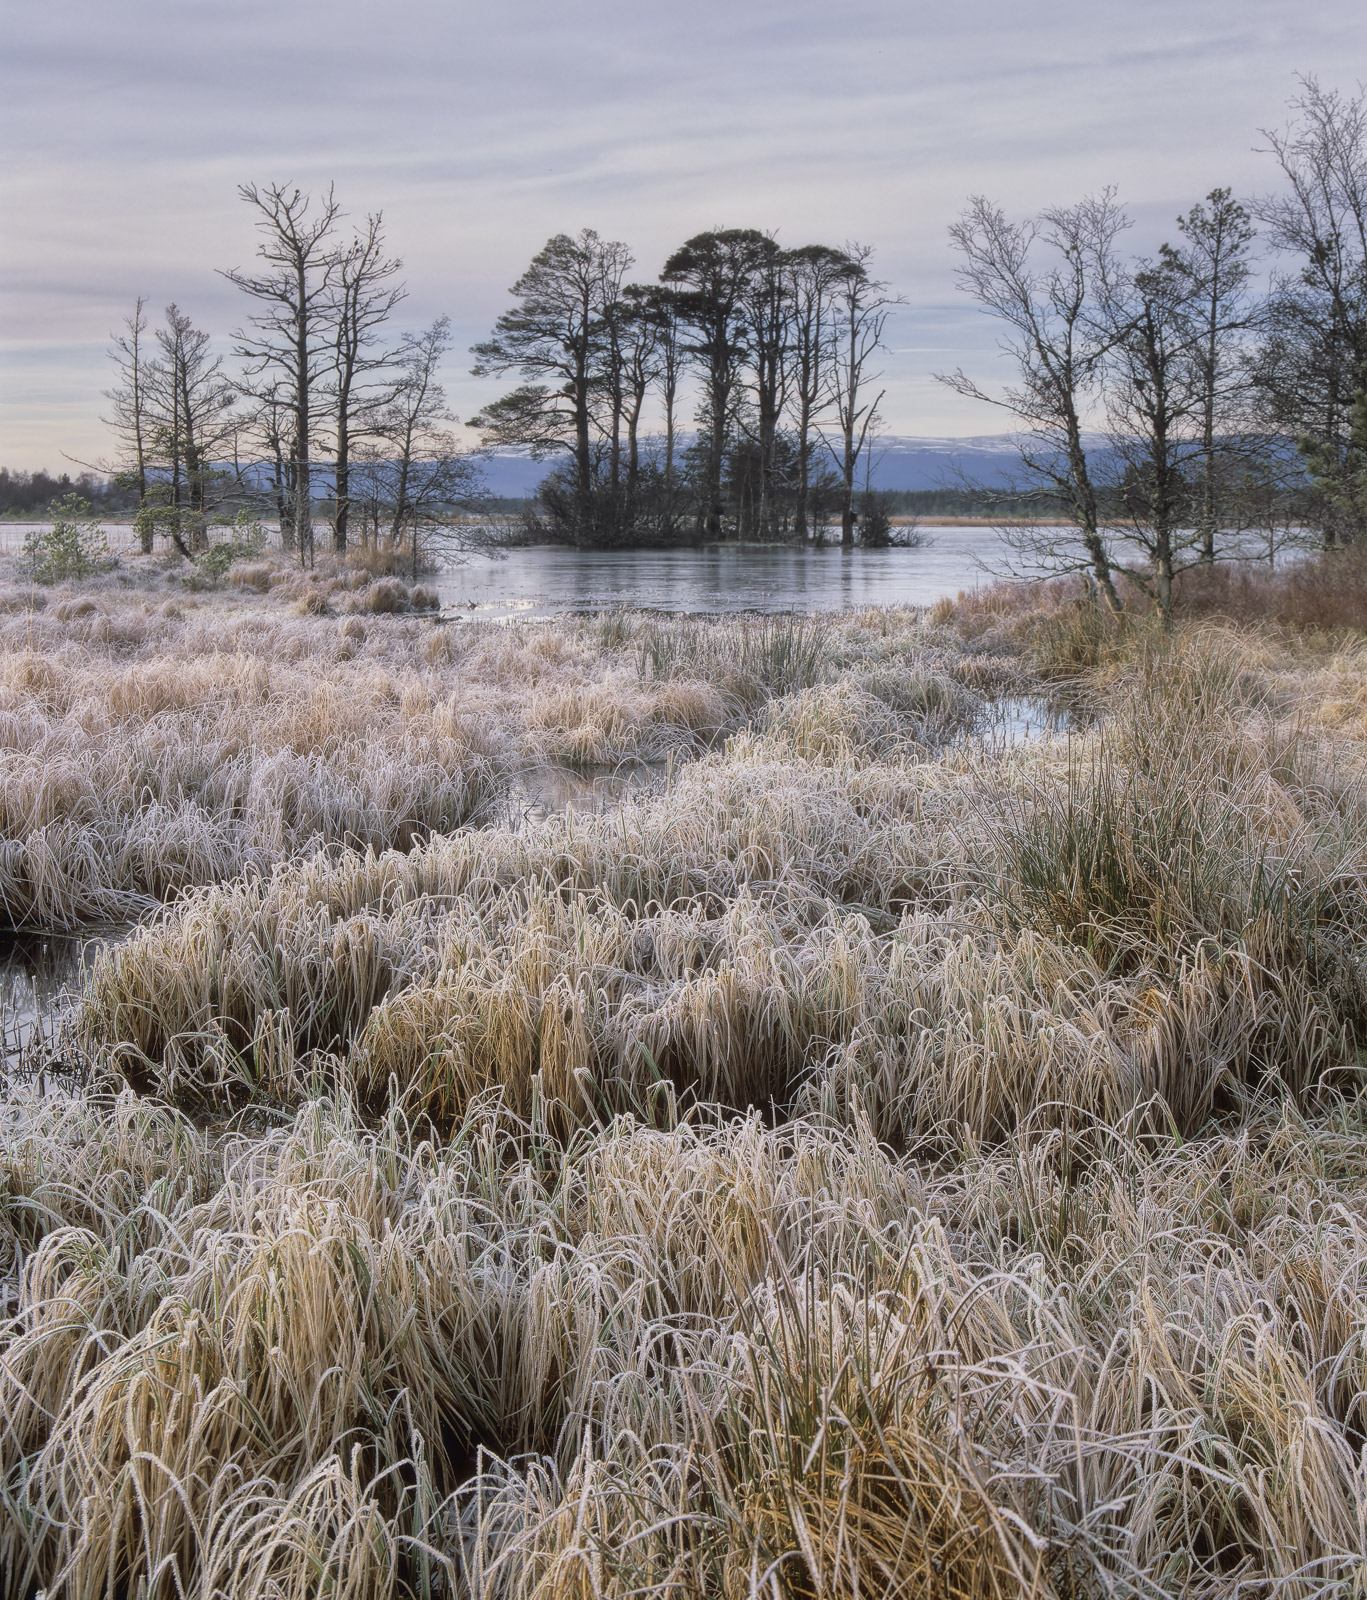 Fourteen below zero was the temperature that remained throughout this very fine winter day even during periods of protracted...